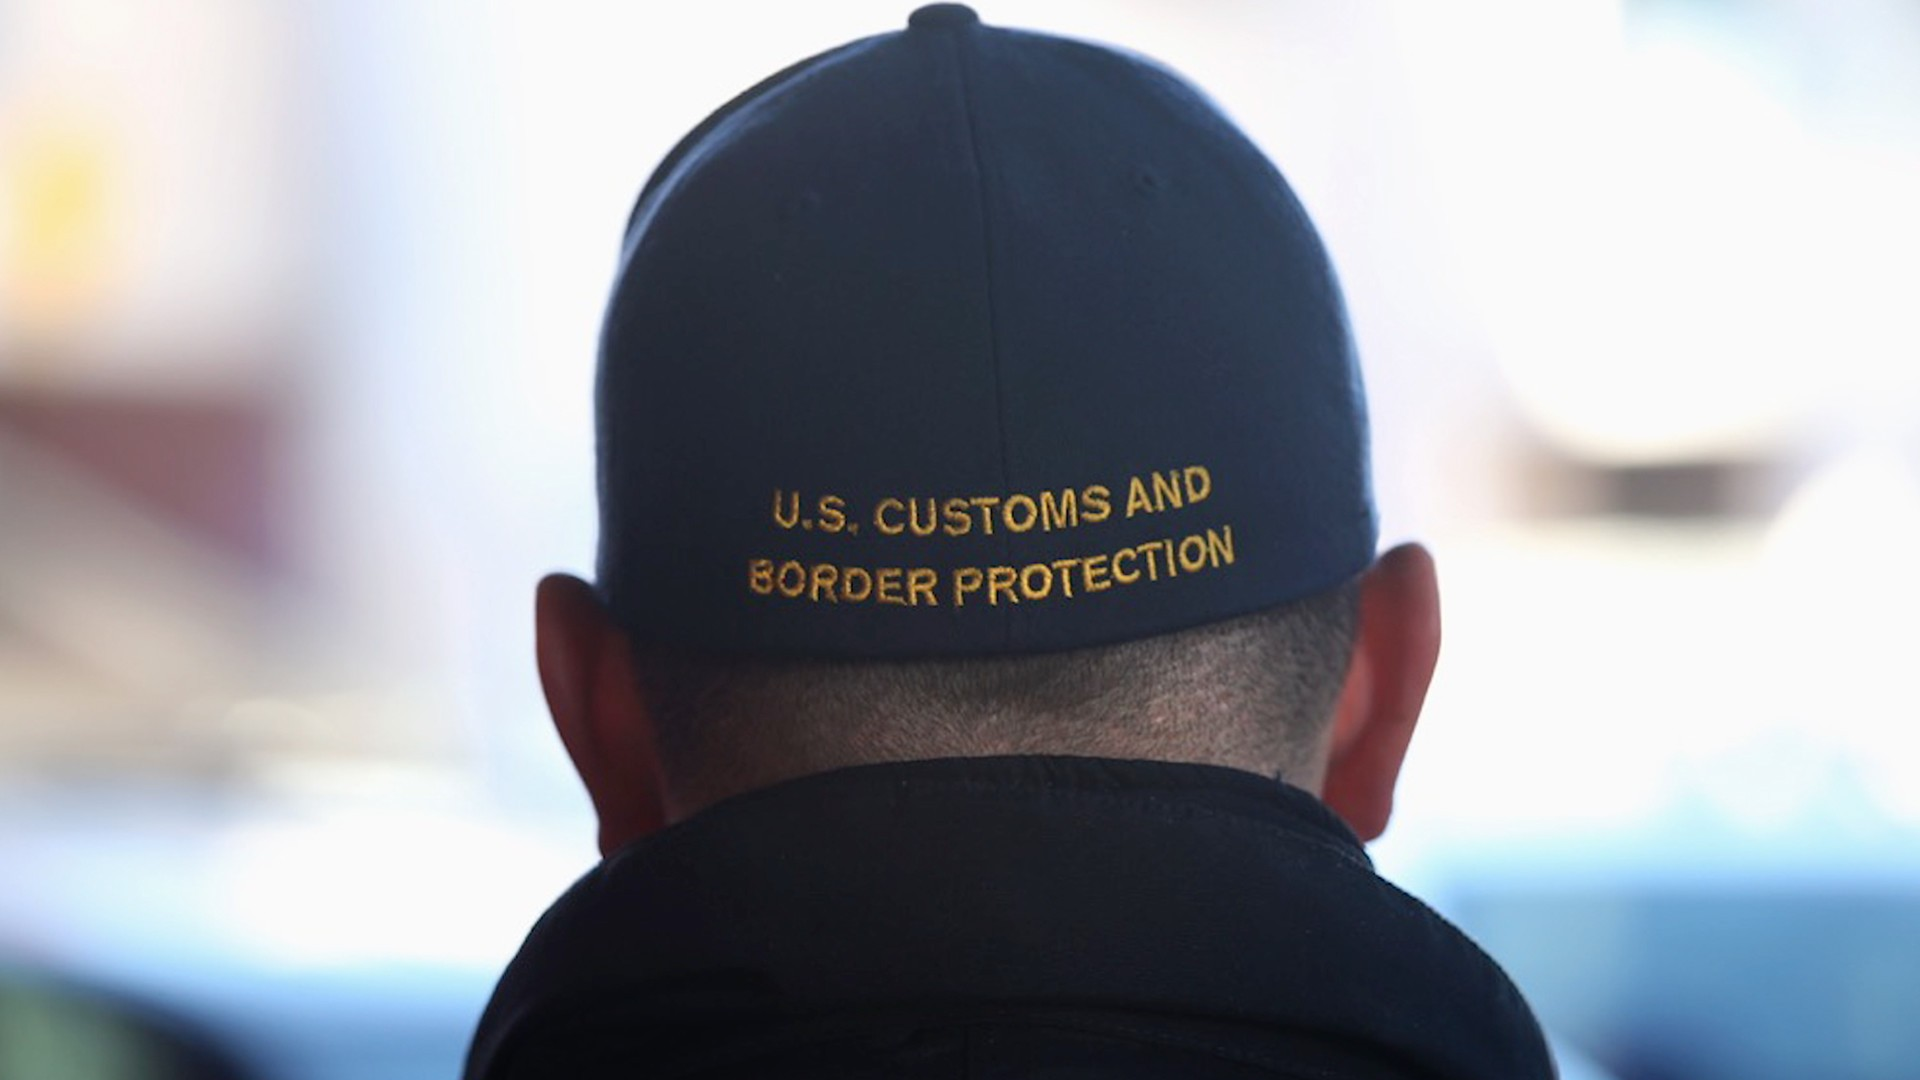 Abuse by the U.S. Border Control